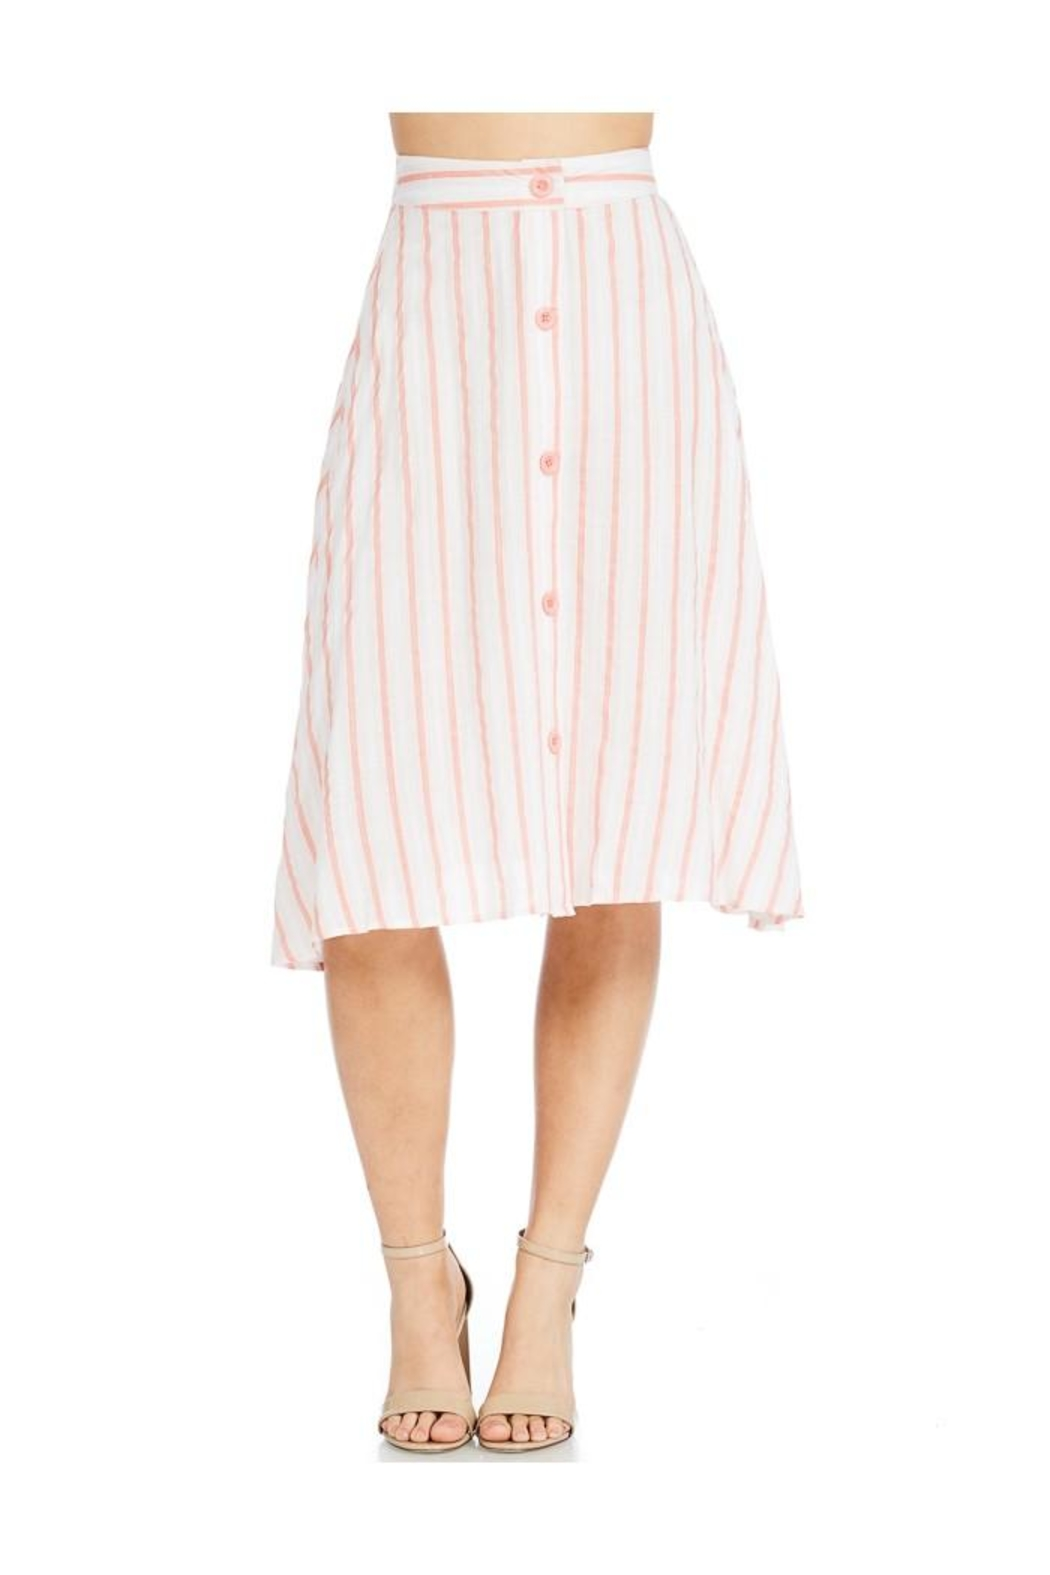 Miley and Molly Linen Stripe Button Front A-Line Midi Skirt - Main Image